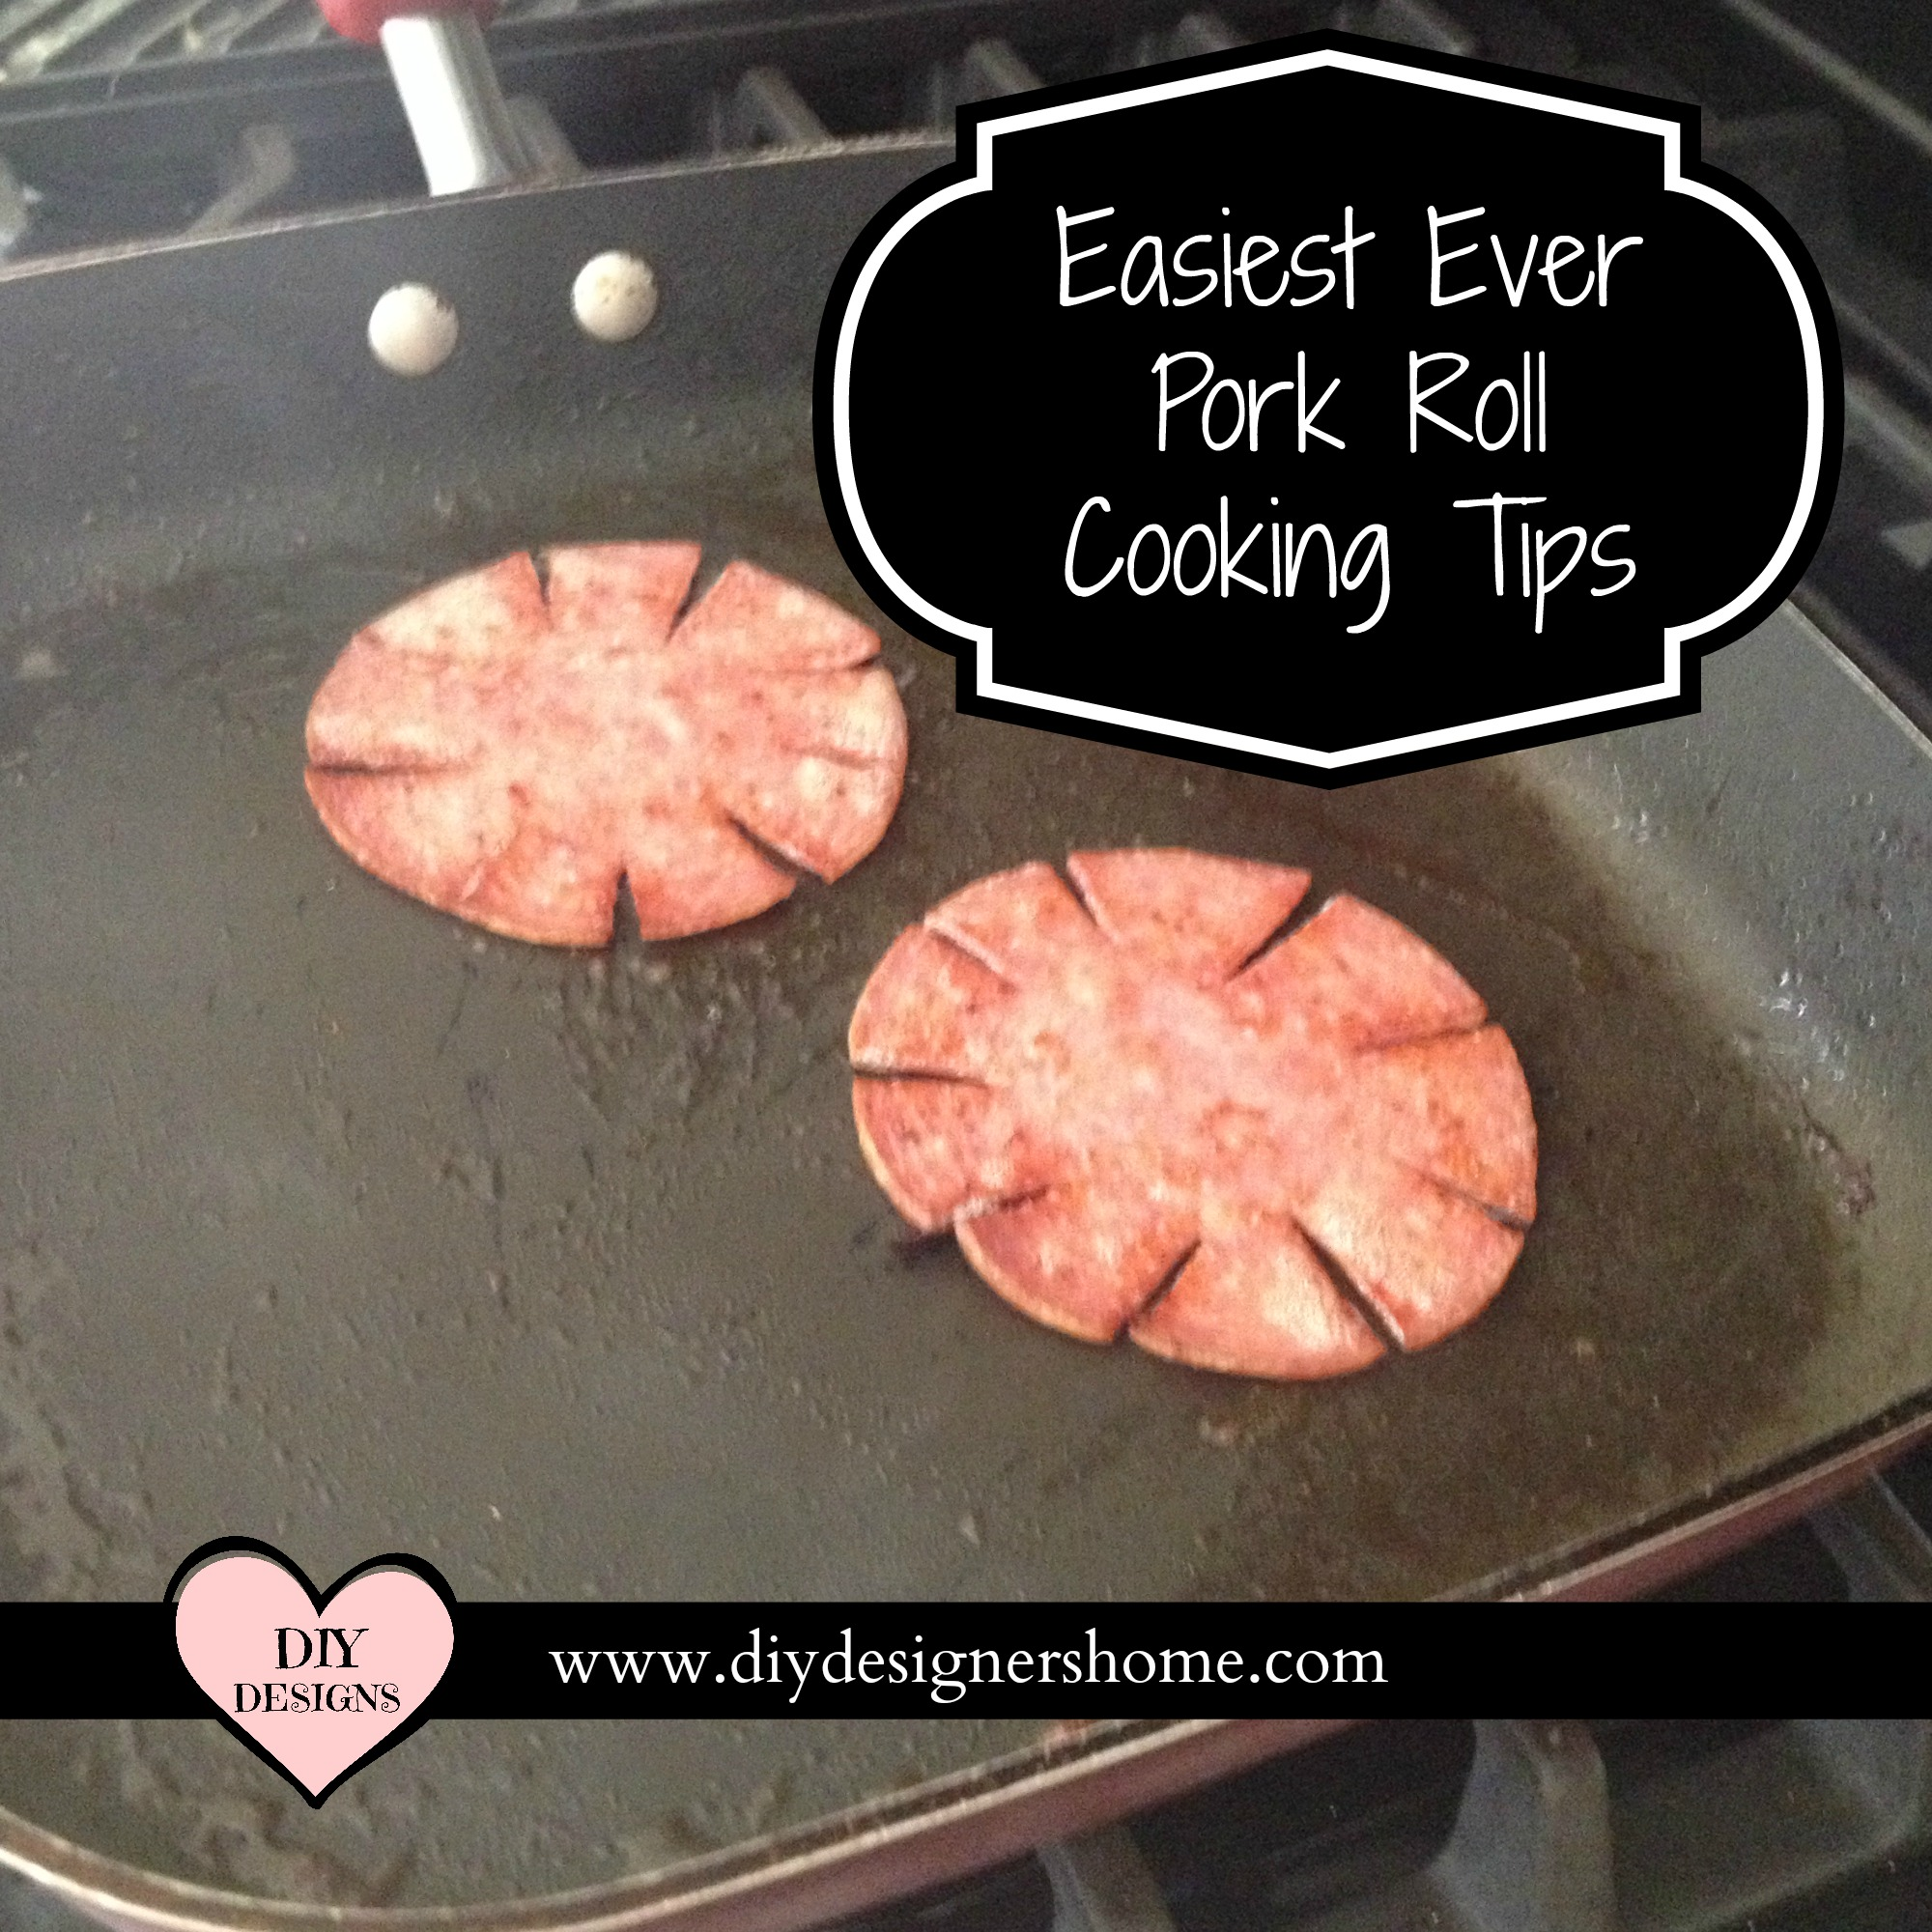 How To Cook Pork Roll